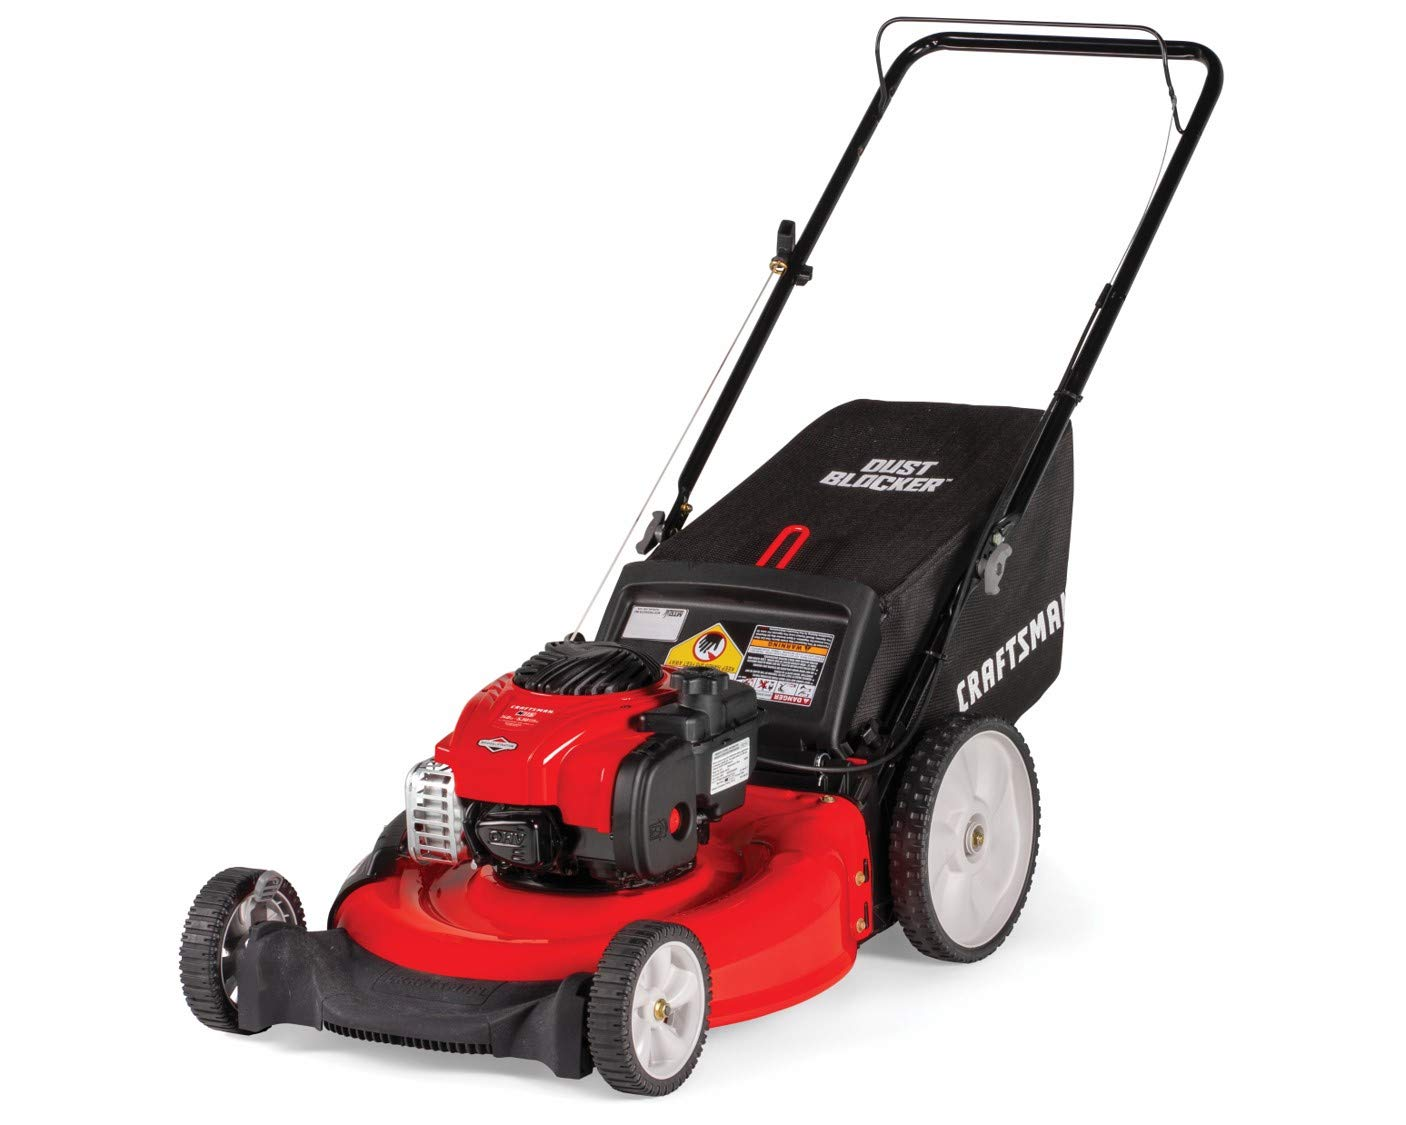 Craftsman M115 11A-B25W791 Push Lawn Mower, Red 1 140CC OHV GAS POWERED ENGINE: Powerful Briggs and Stratton 550E gas engine comes equipped with recoil and primer. 3-IN-1 CAPABILITIES: Unit has side discharge, rear discharge, and mulching capabilities. 21-INCH CUTTING DECK: Efficient cutting deck helps trim grass in one quick pass for an easier yard job.